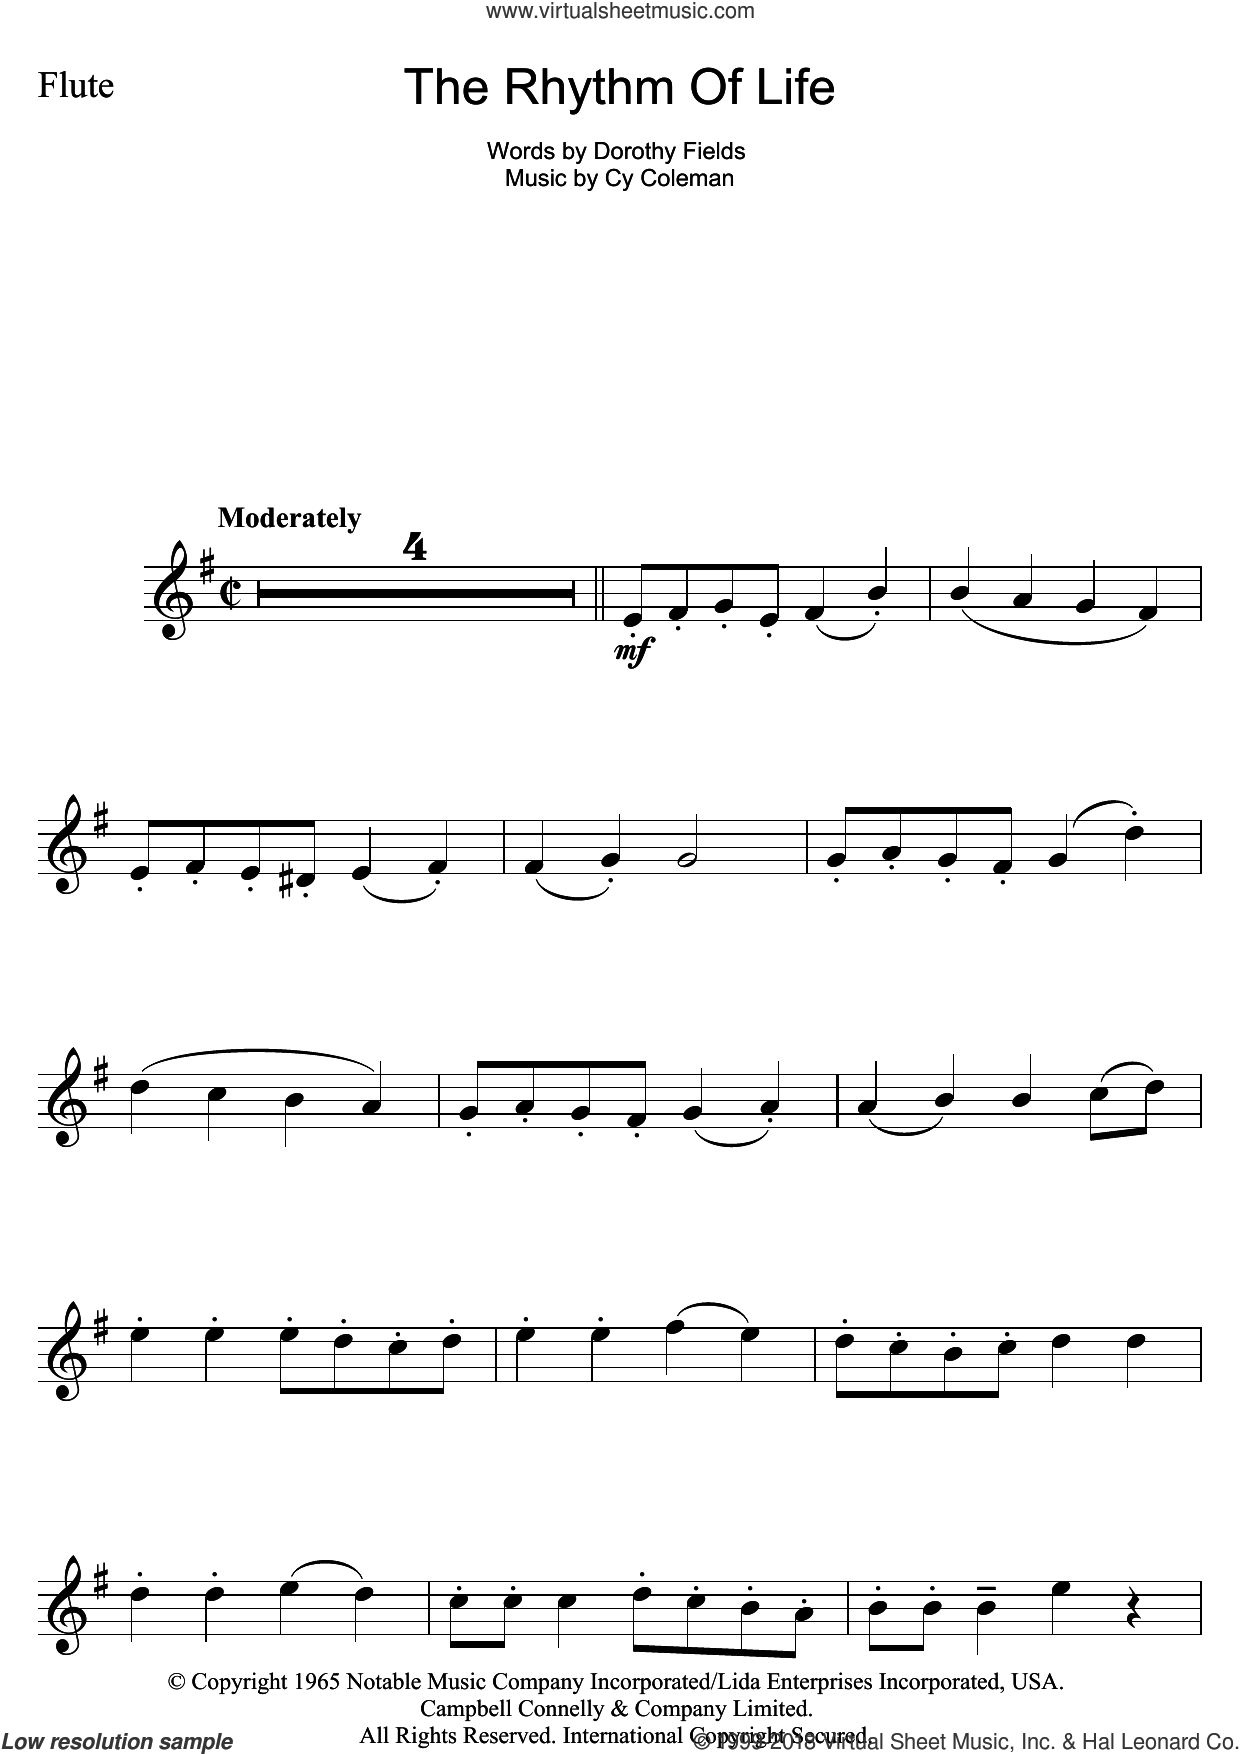 The Rhythm Of Life (from Sweet Charity) sheet music for flute solo by Cy Coleman and Dorothy Fields, intermediate skill level